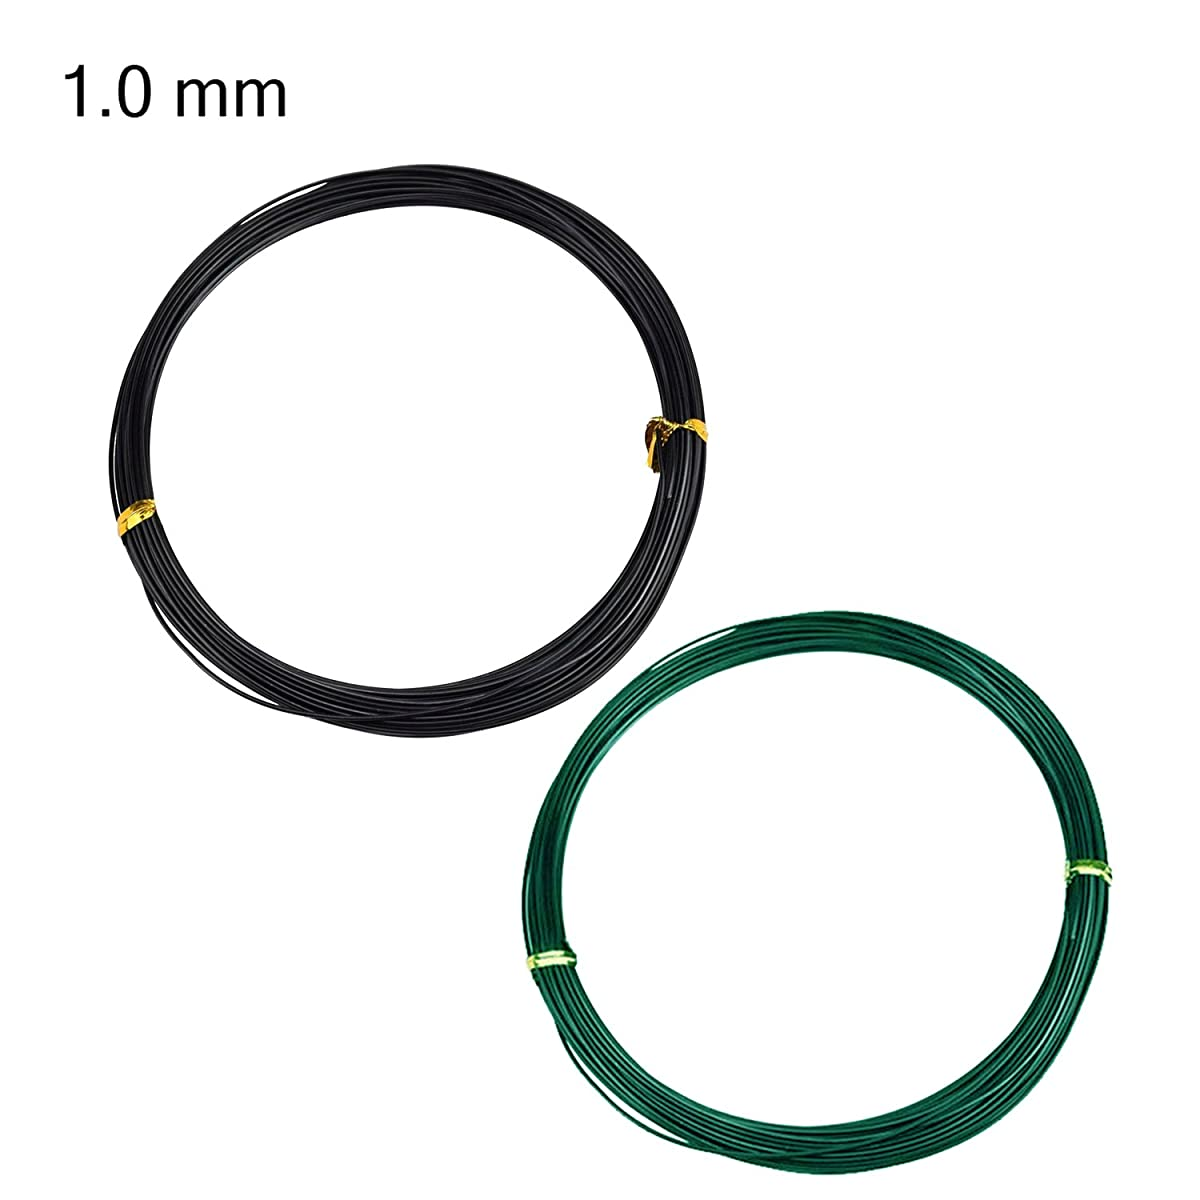 Bonsai Training Wire Set of 4 - Total 128 Feet(32 Feet Each Size) 3 Size - 1.0MM,1.5MM,2.0MM - Corrosion and Rust Resistant by ZELARMAN